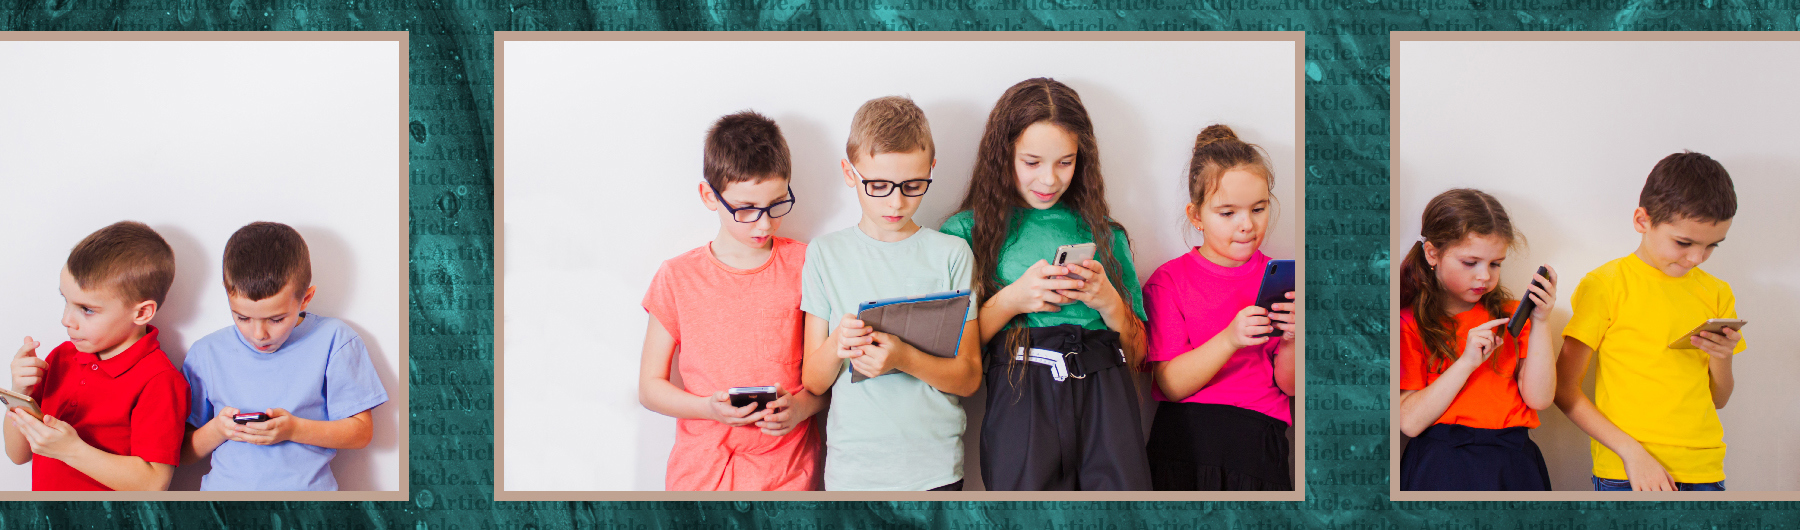 Screen time has little impact on children's social skills